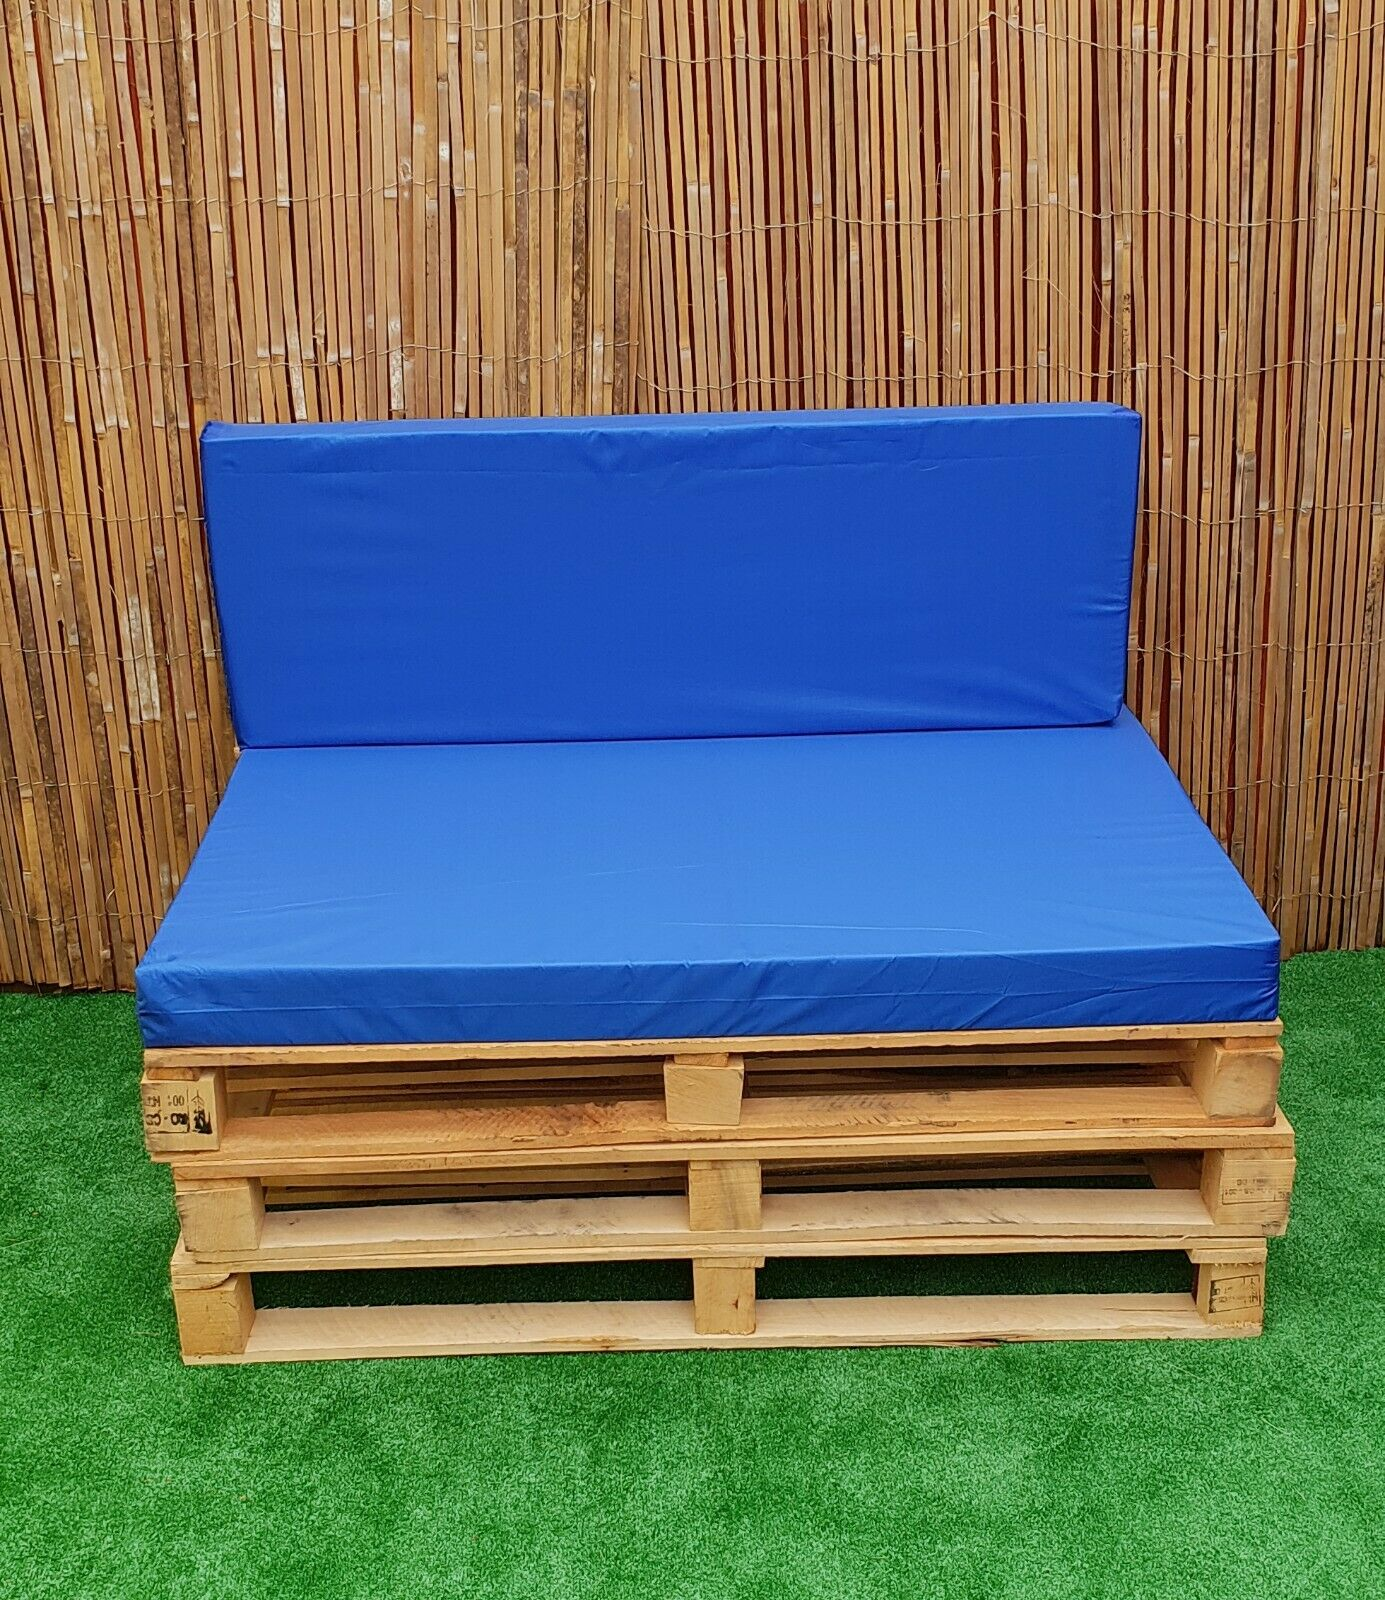 Garden Furniture - Kosipad Pallet Seating Bench Garden Furniture Foam Cushions Waterproof Covers